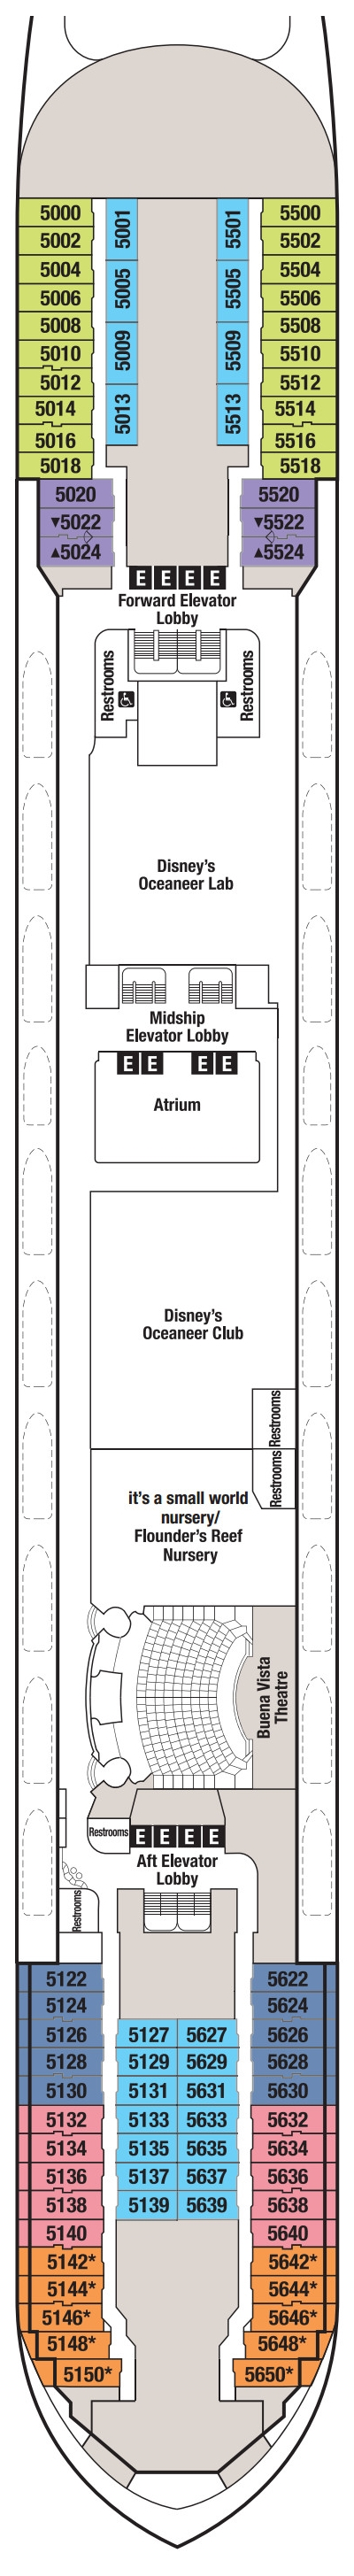 Disney Wonder Deck 5 layout